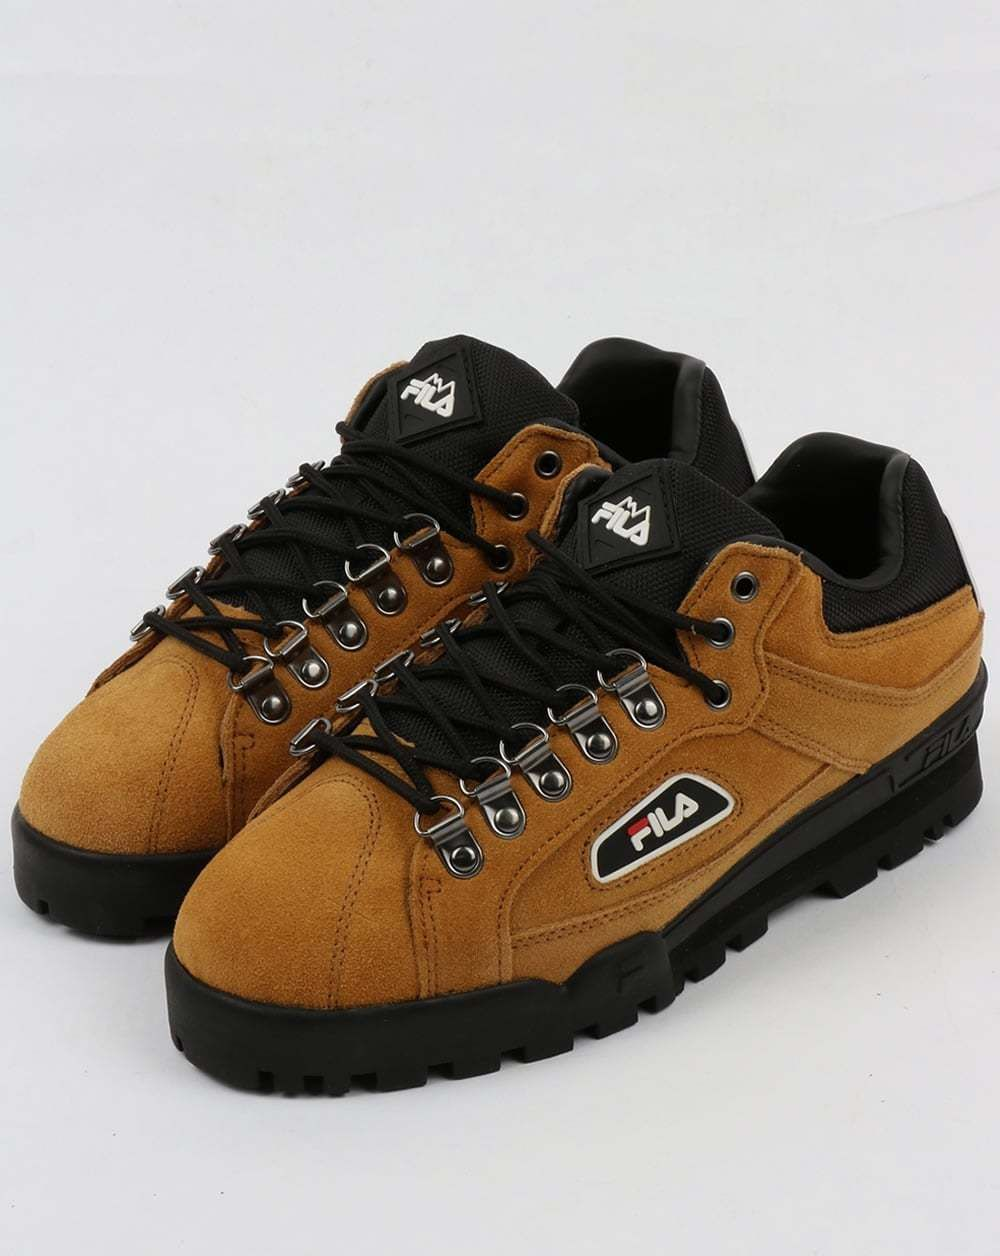 7001b296d4b Fila Vintage Trailblazer Suede Boots in Honey Mustard 80s casual 90s rave  hiking